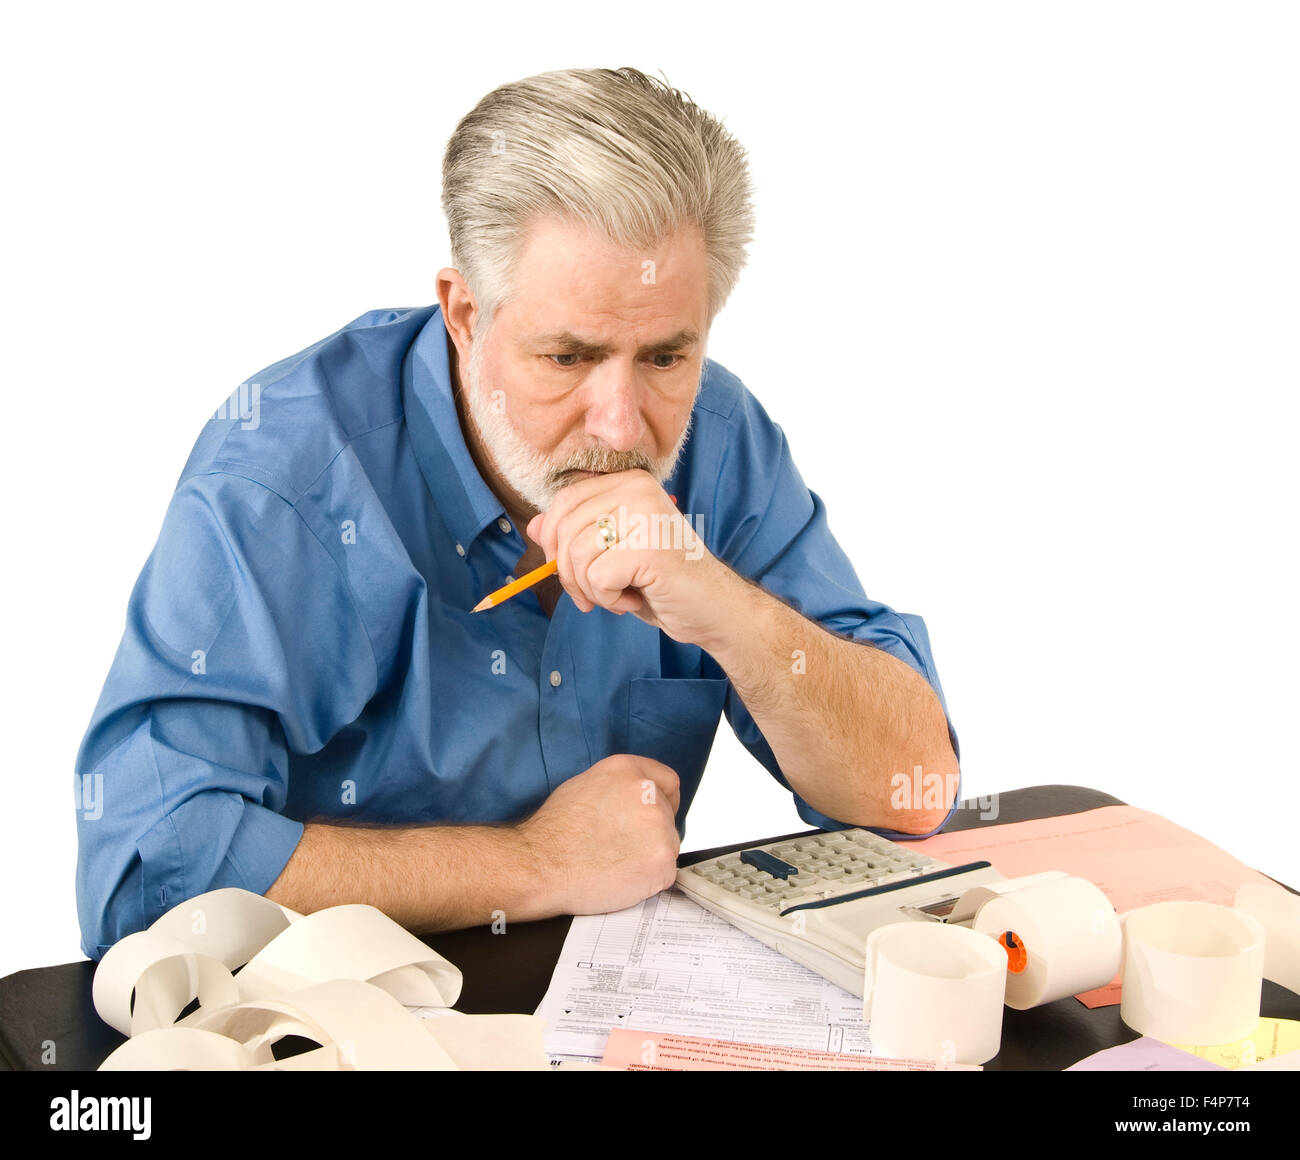 A middle aged man thinks about his tax worries - Stock Image